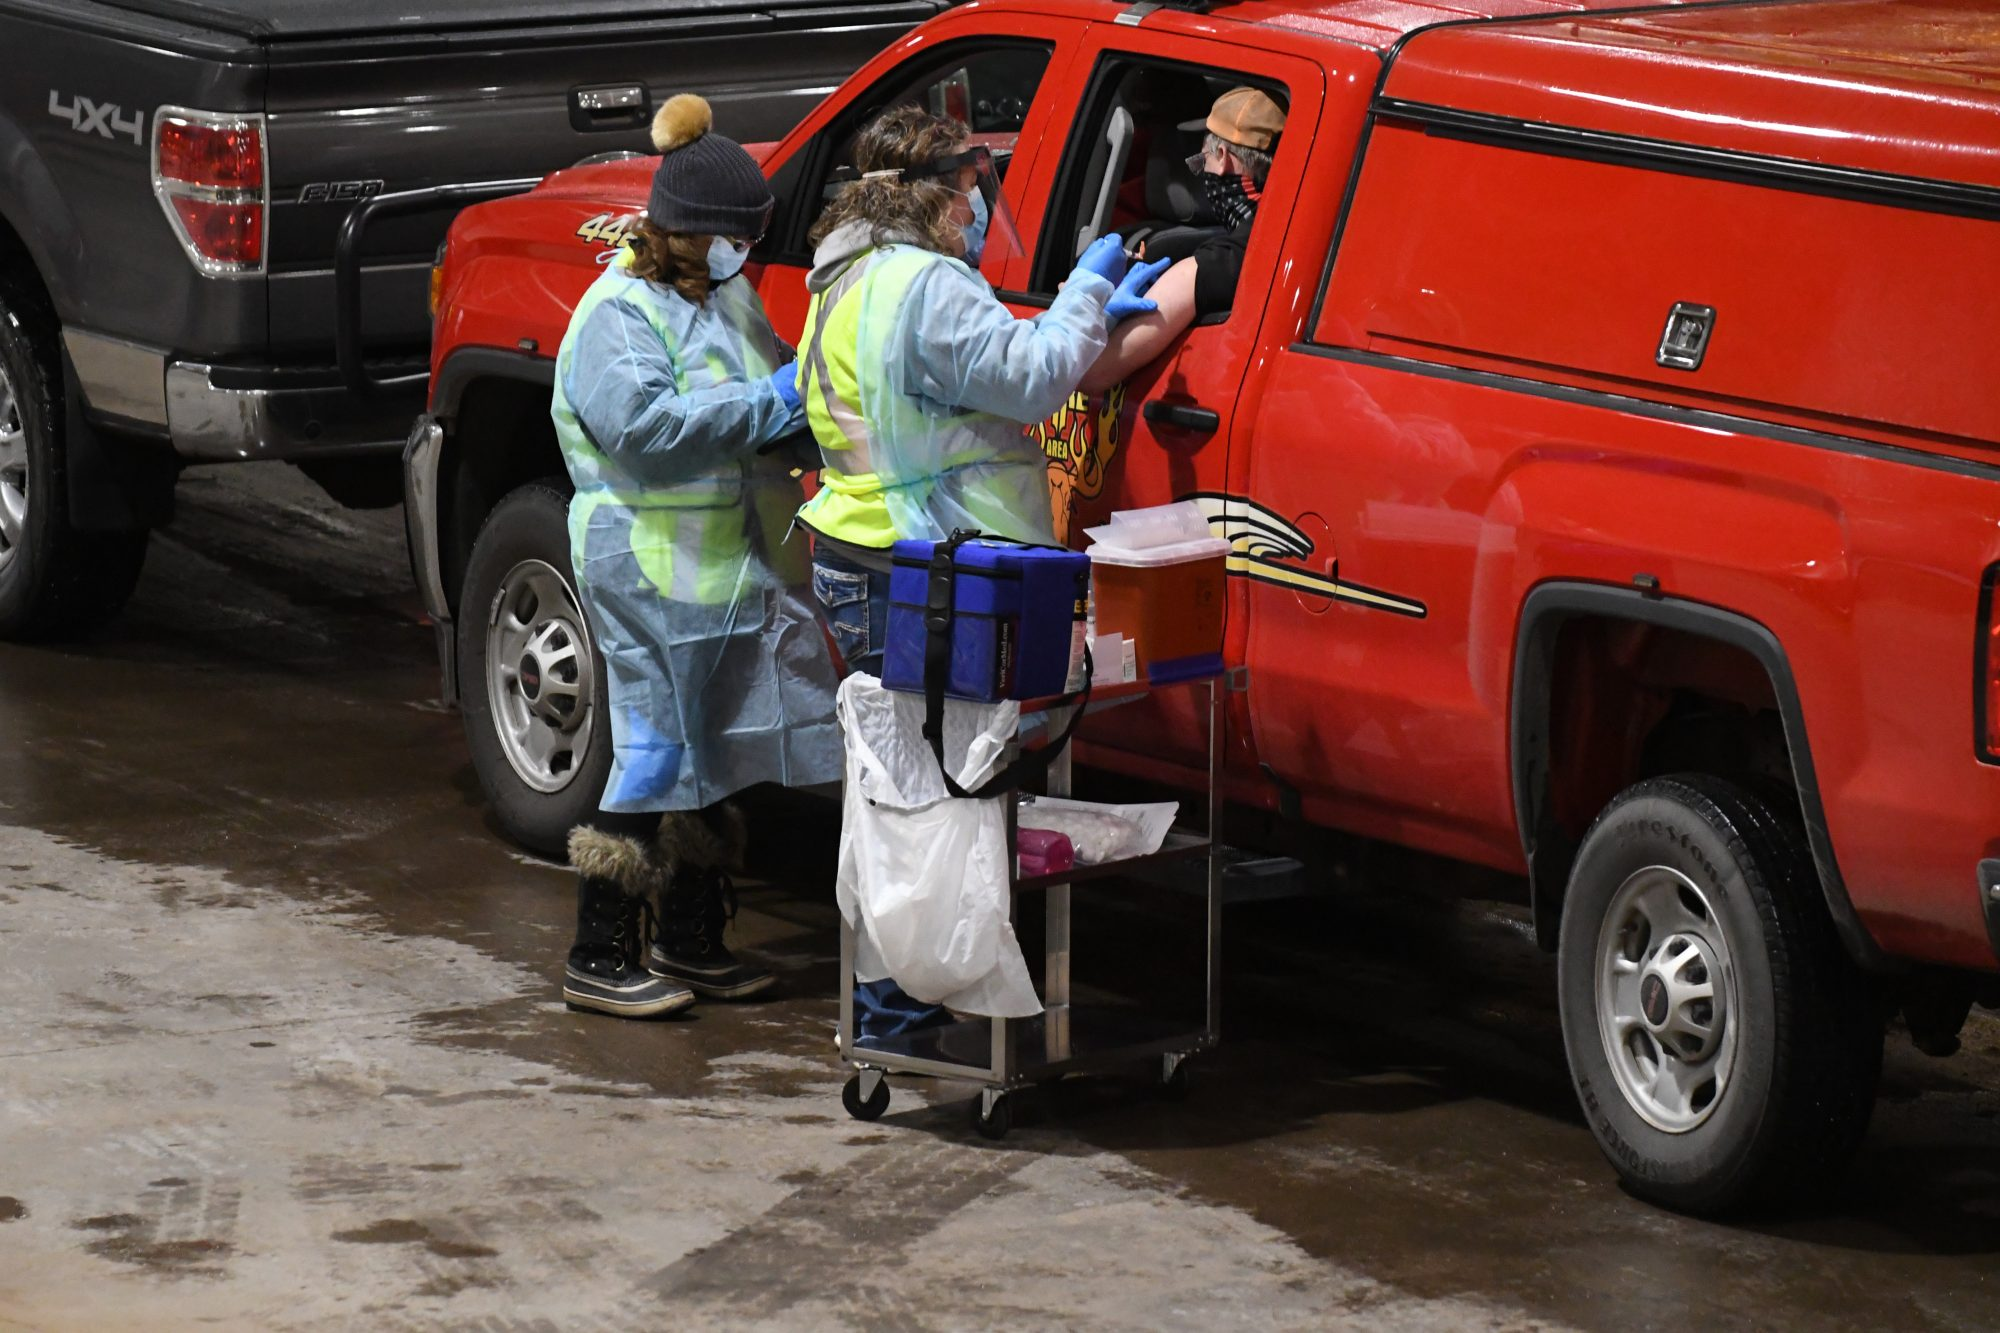 A fire fighter receives a COVID-19 vaccine shot on day one of Carlton County's drive-through vaccination clinic, on Dec. 29, 2020, in Carlton, Minn.